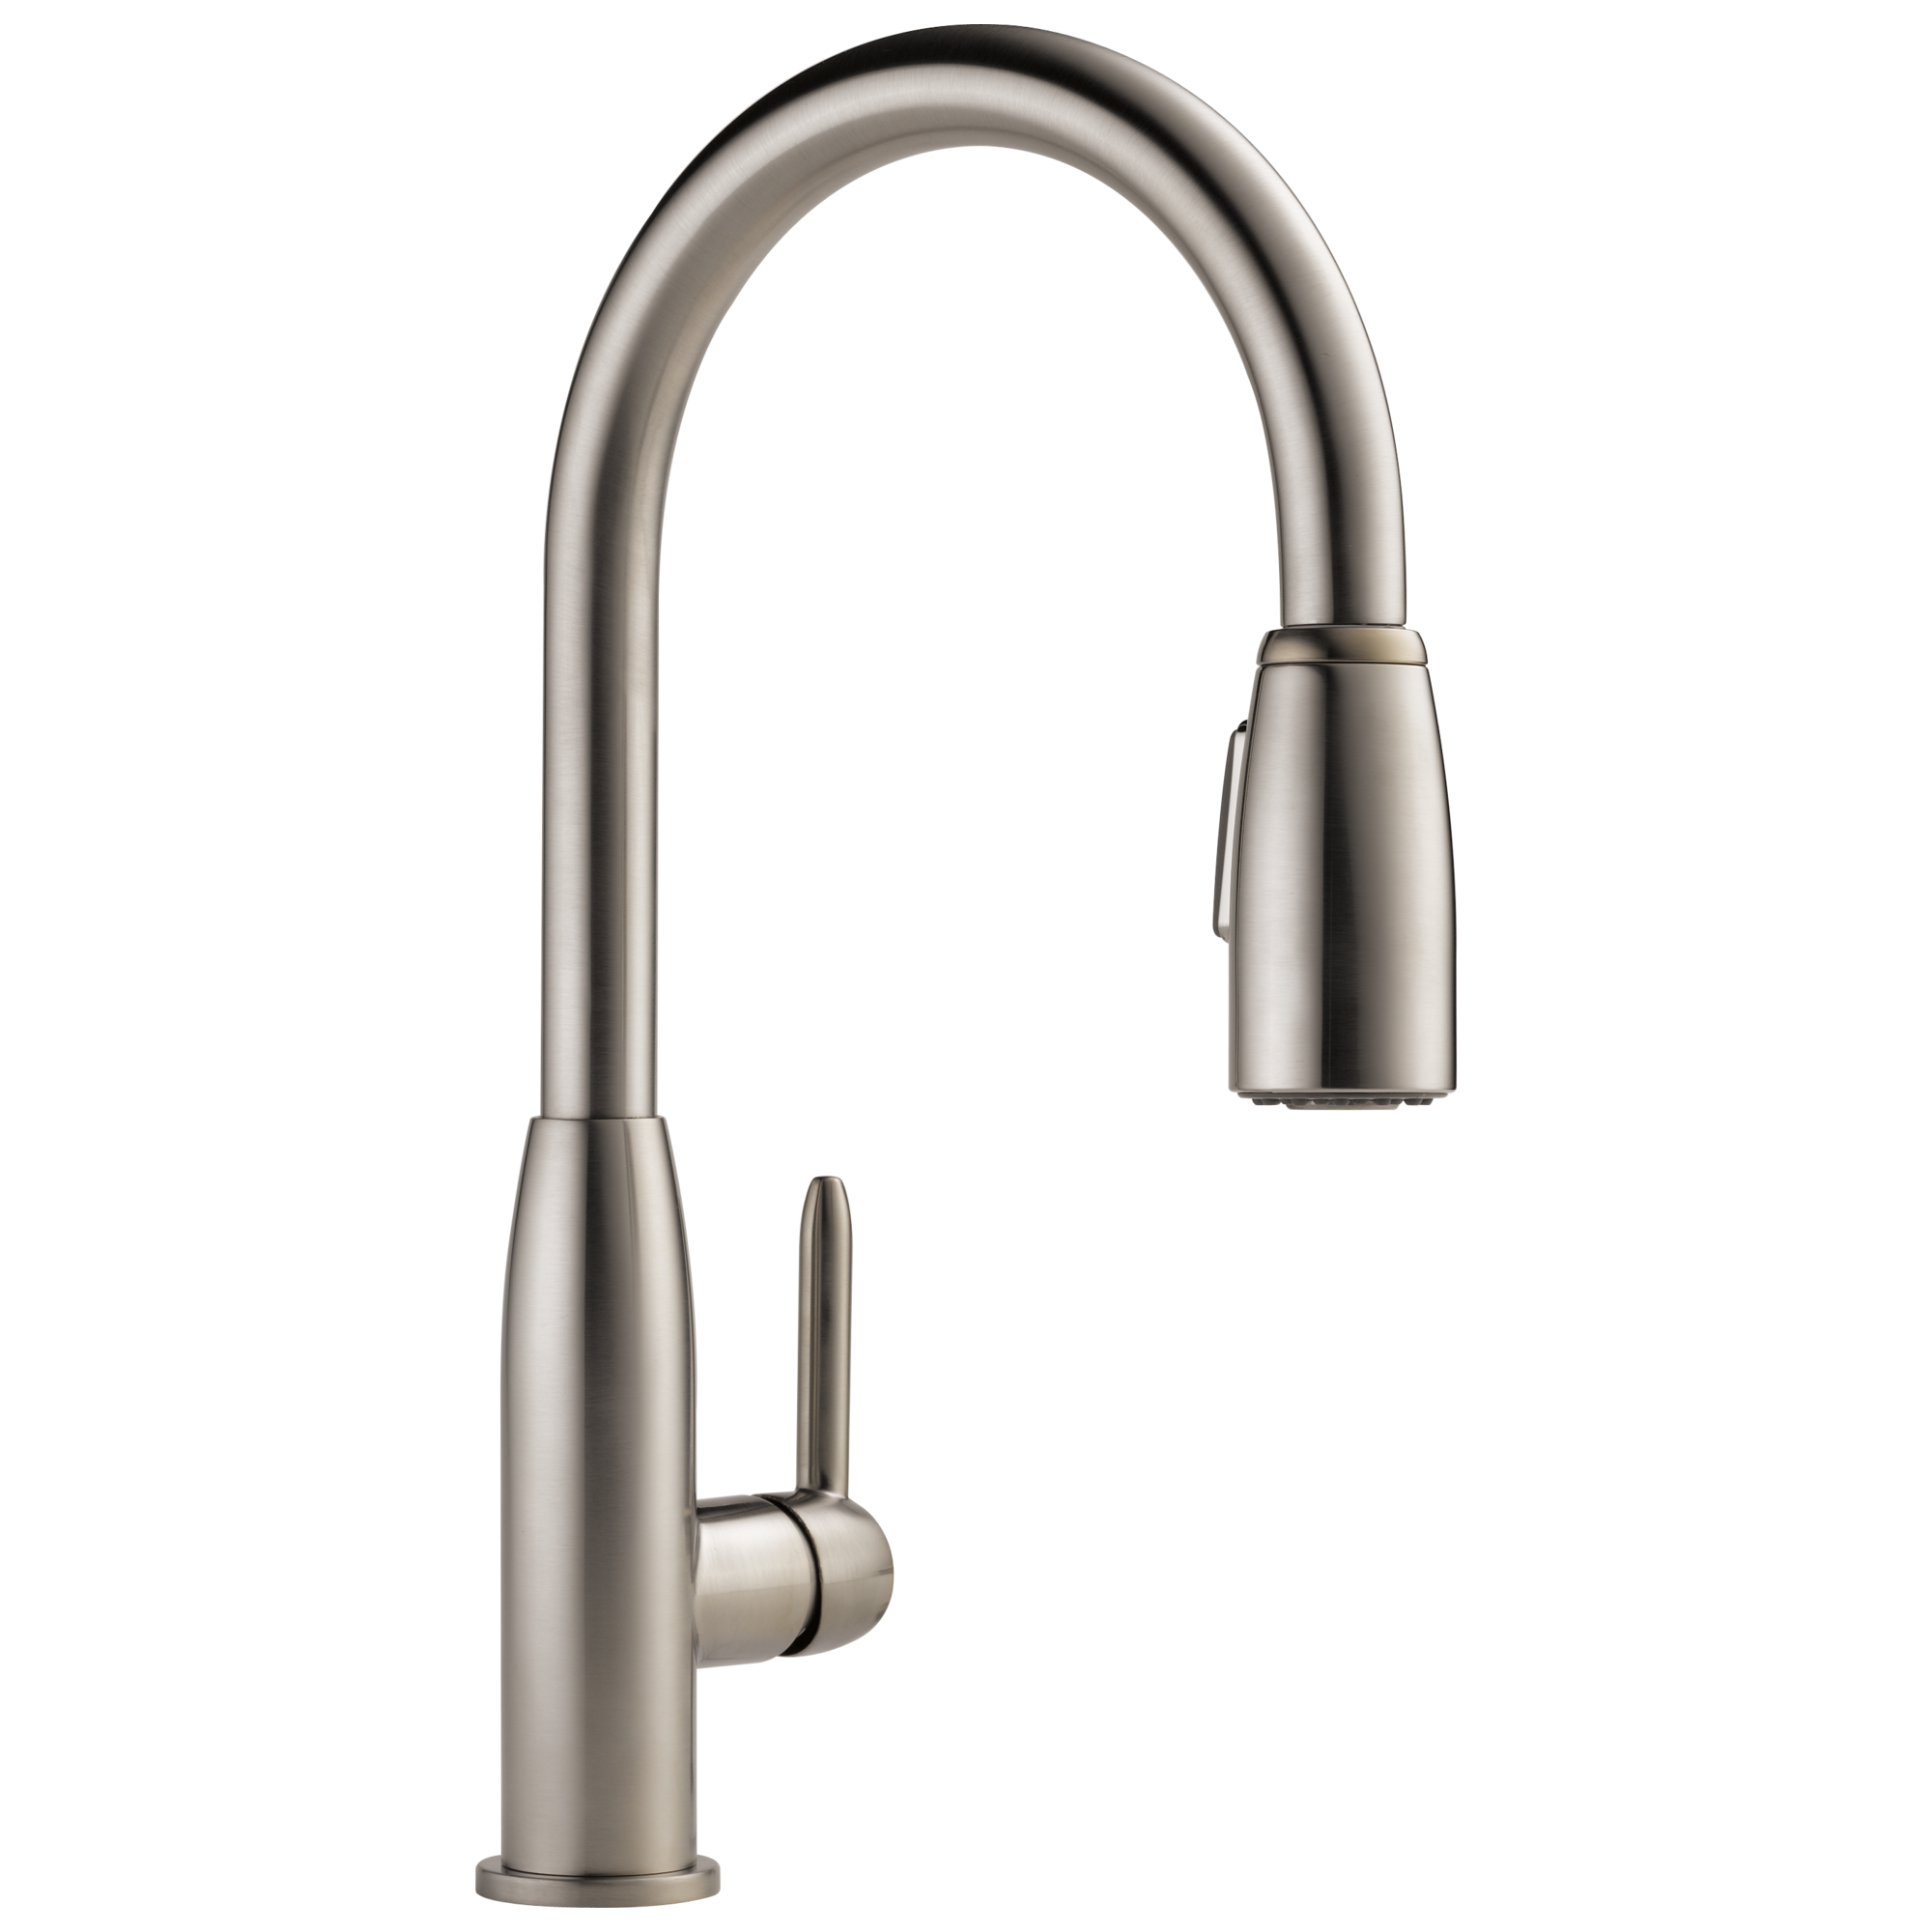 Peerless Faucet P188103lf Ss Single Handle Kitchen Pull Down